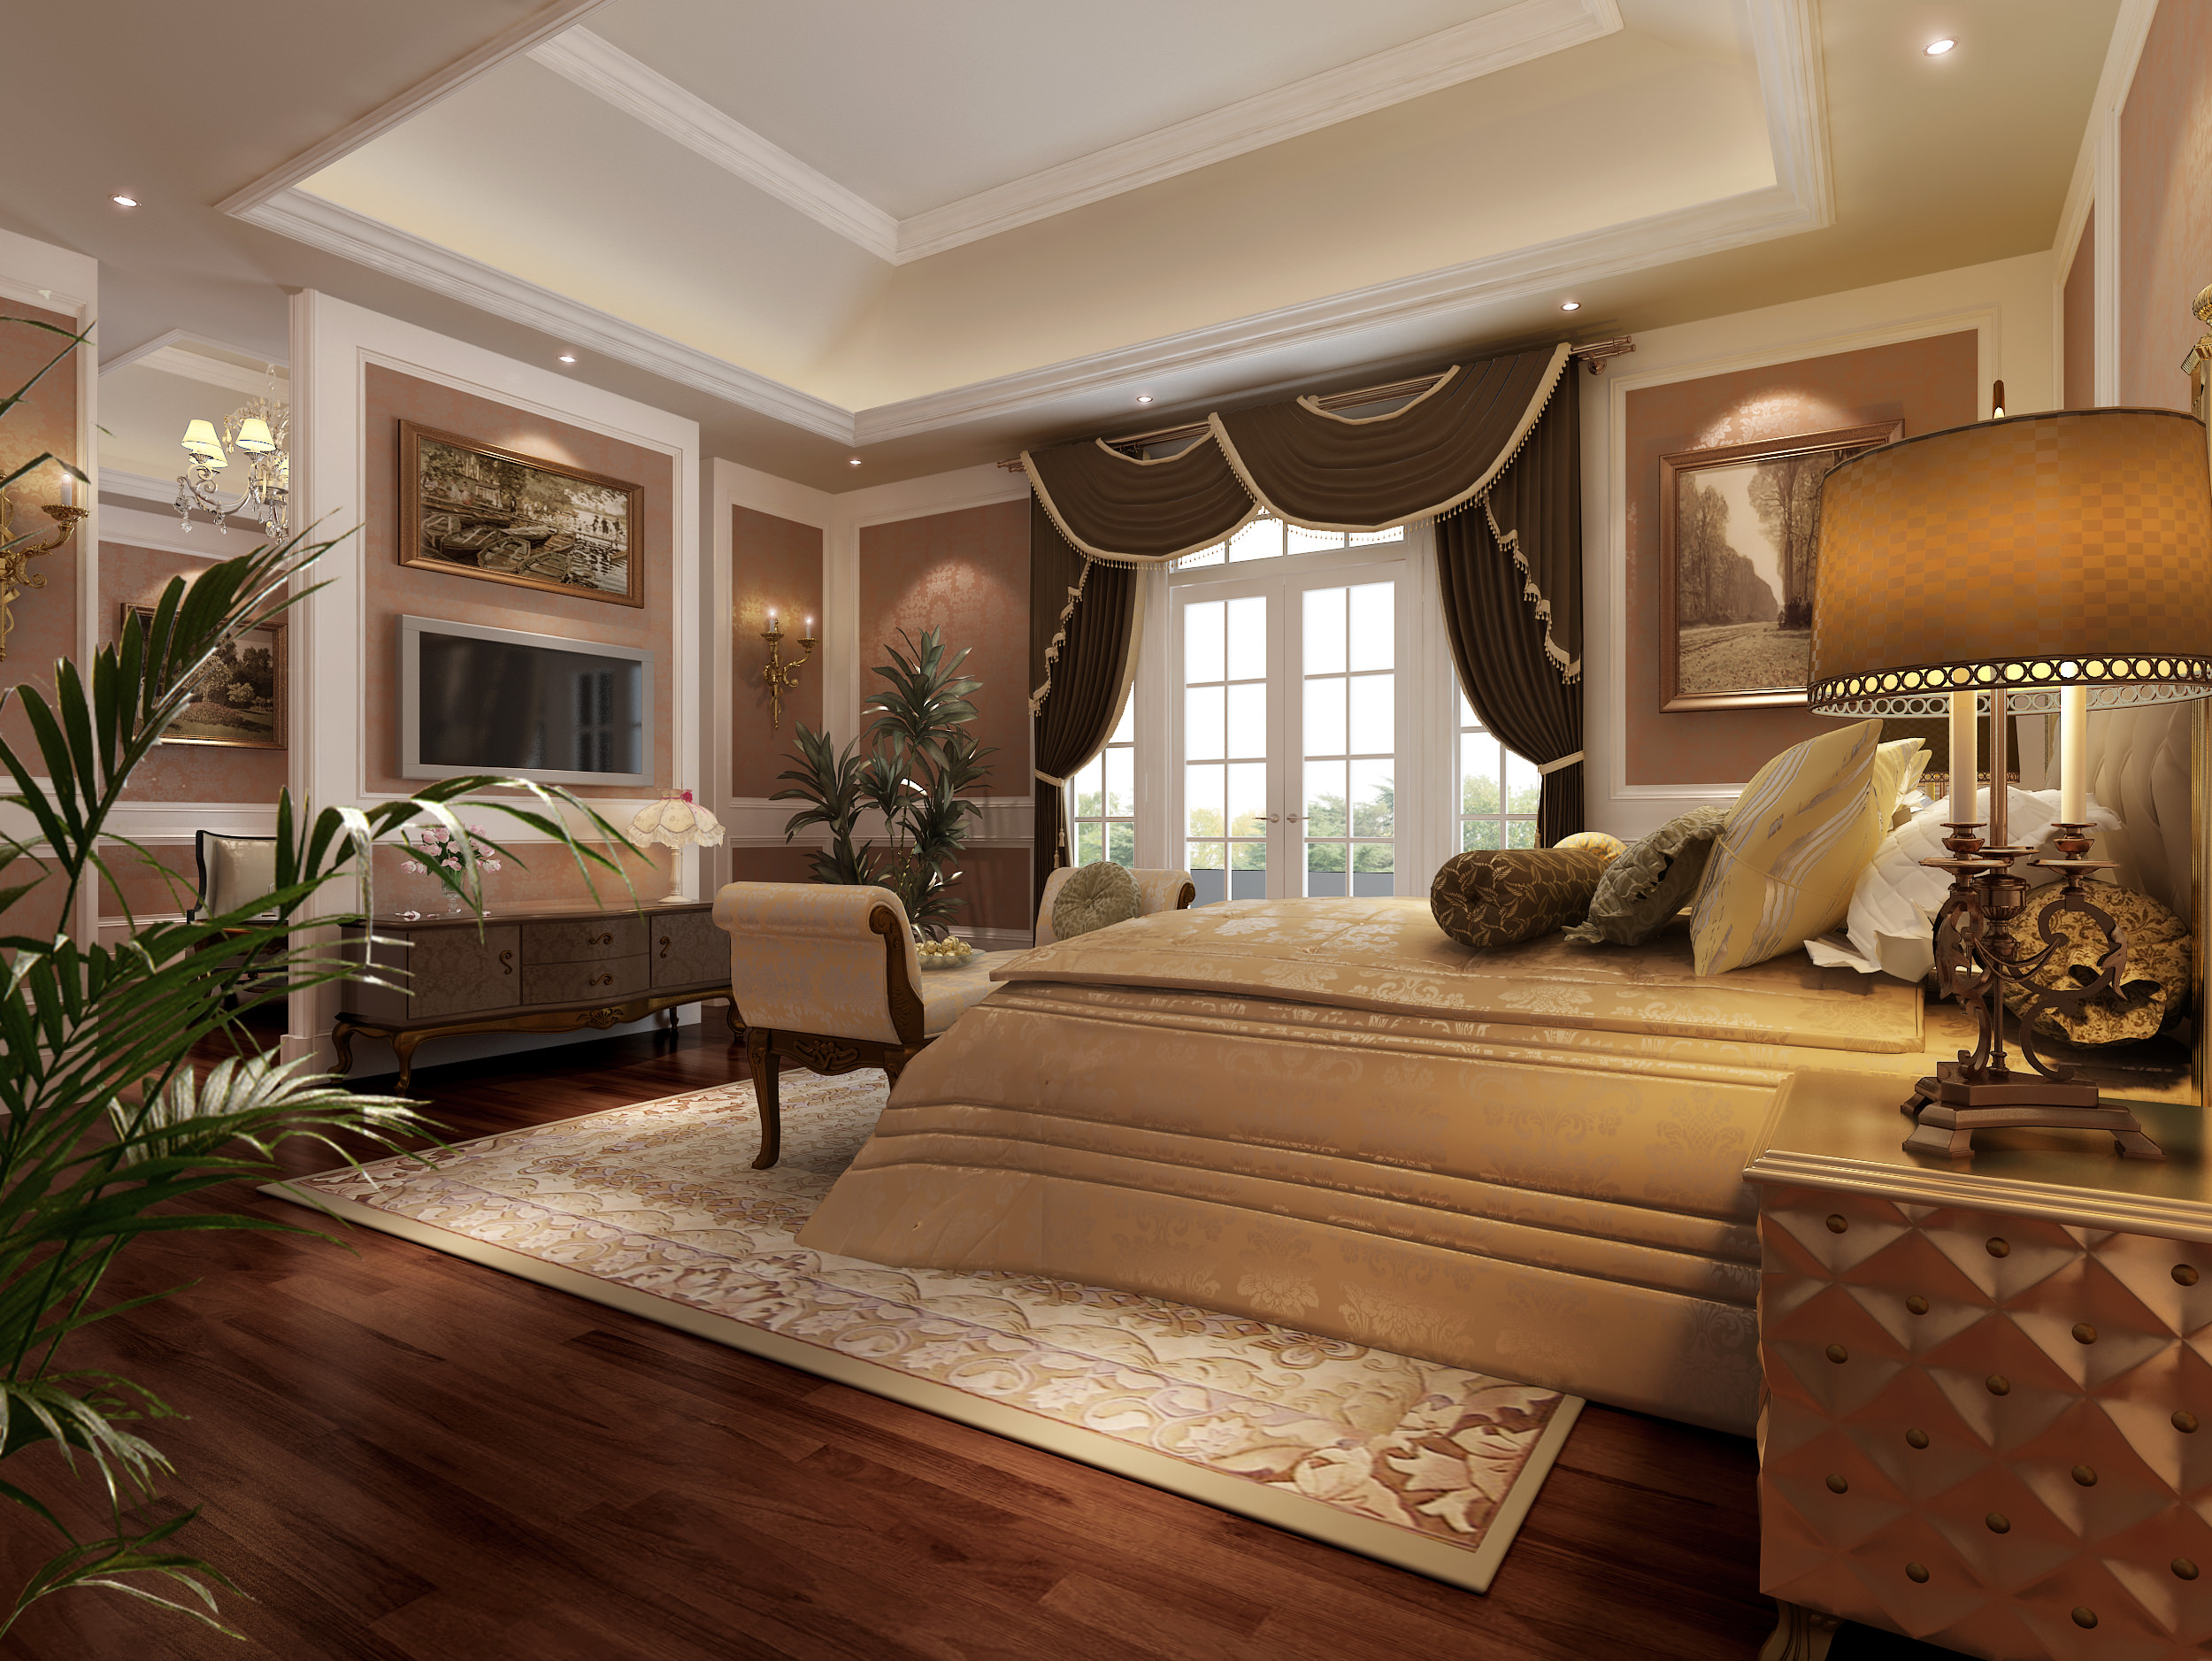 Living room and bedroom collection 13 3d model max dwg for Bedroom designs 3d model